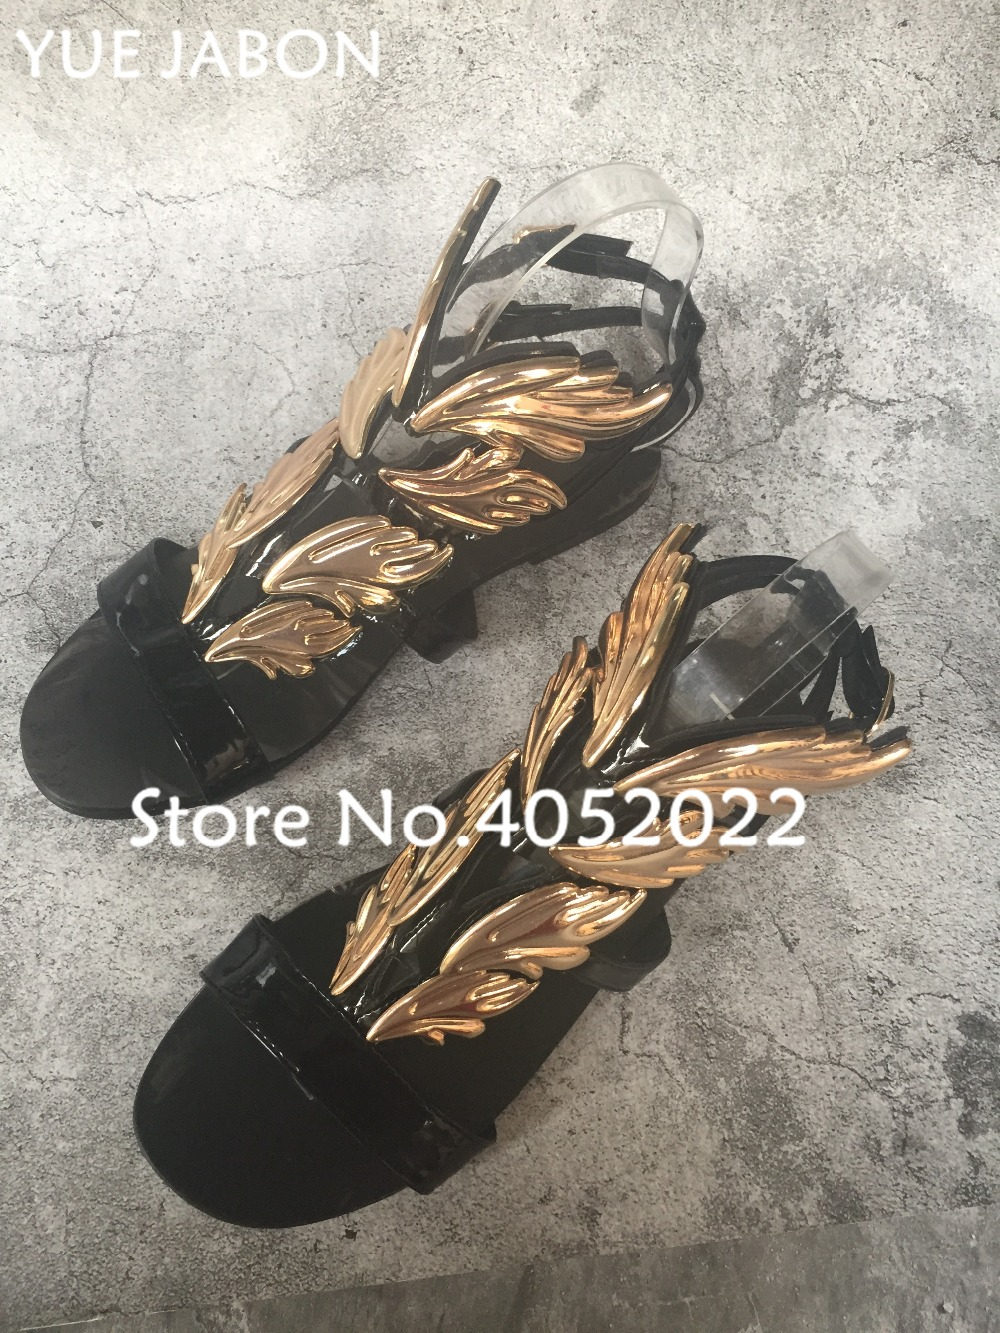 46fc9e8e97e5 2018 Shoes outs YUE Heel Stiletto Gladiator Party Winged Summer JABON Sandal  Flame Leaves Women Flat ...